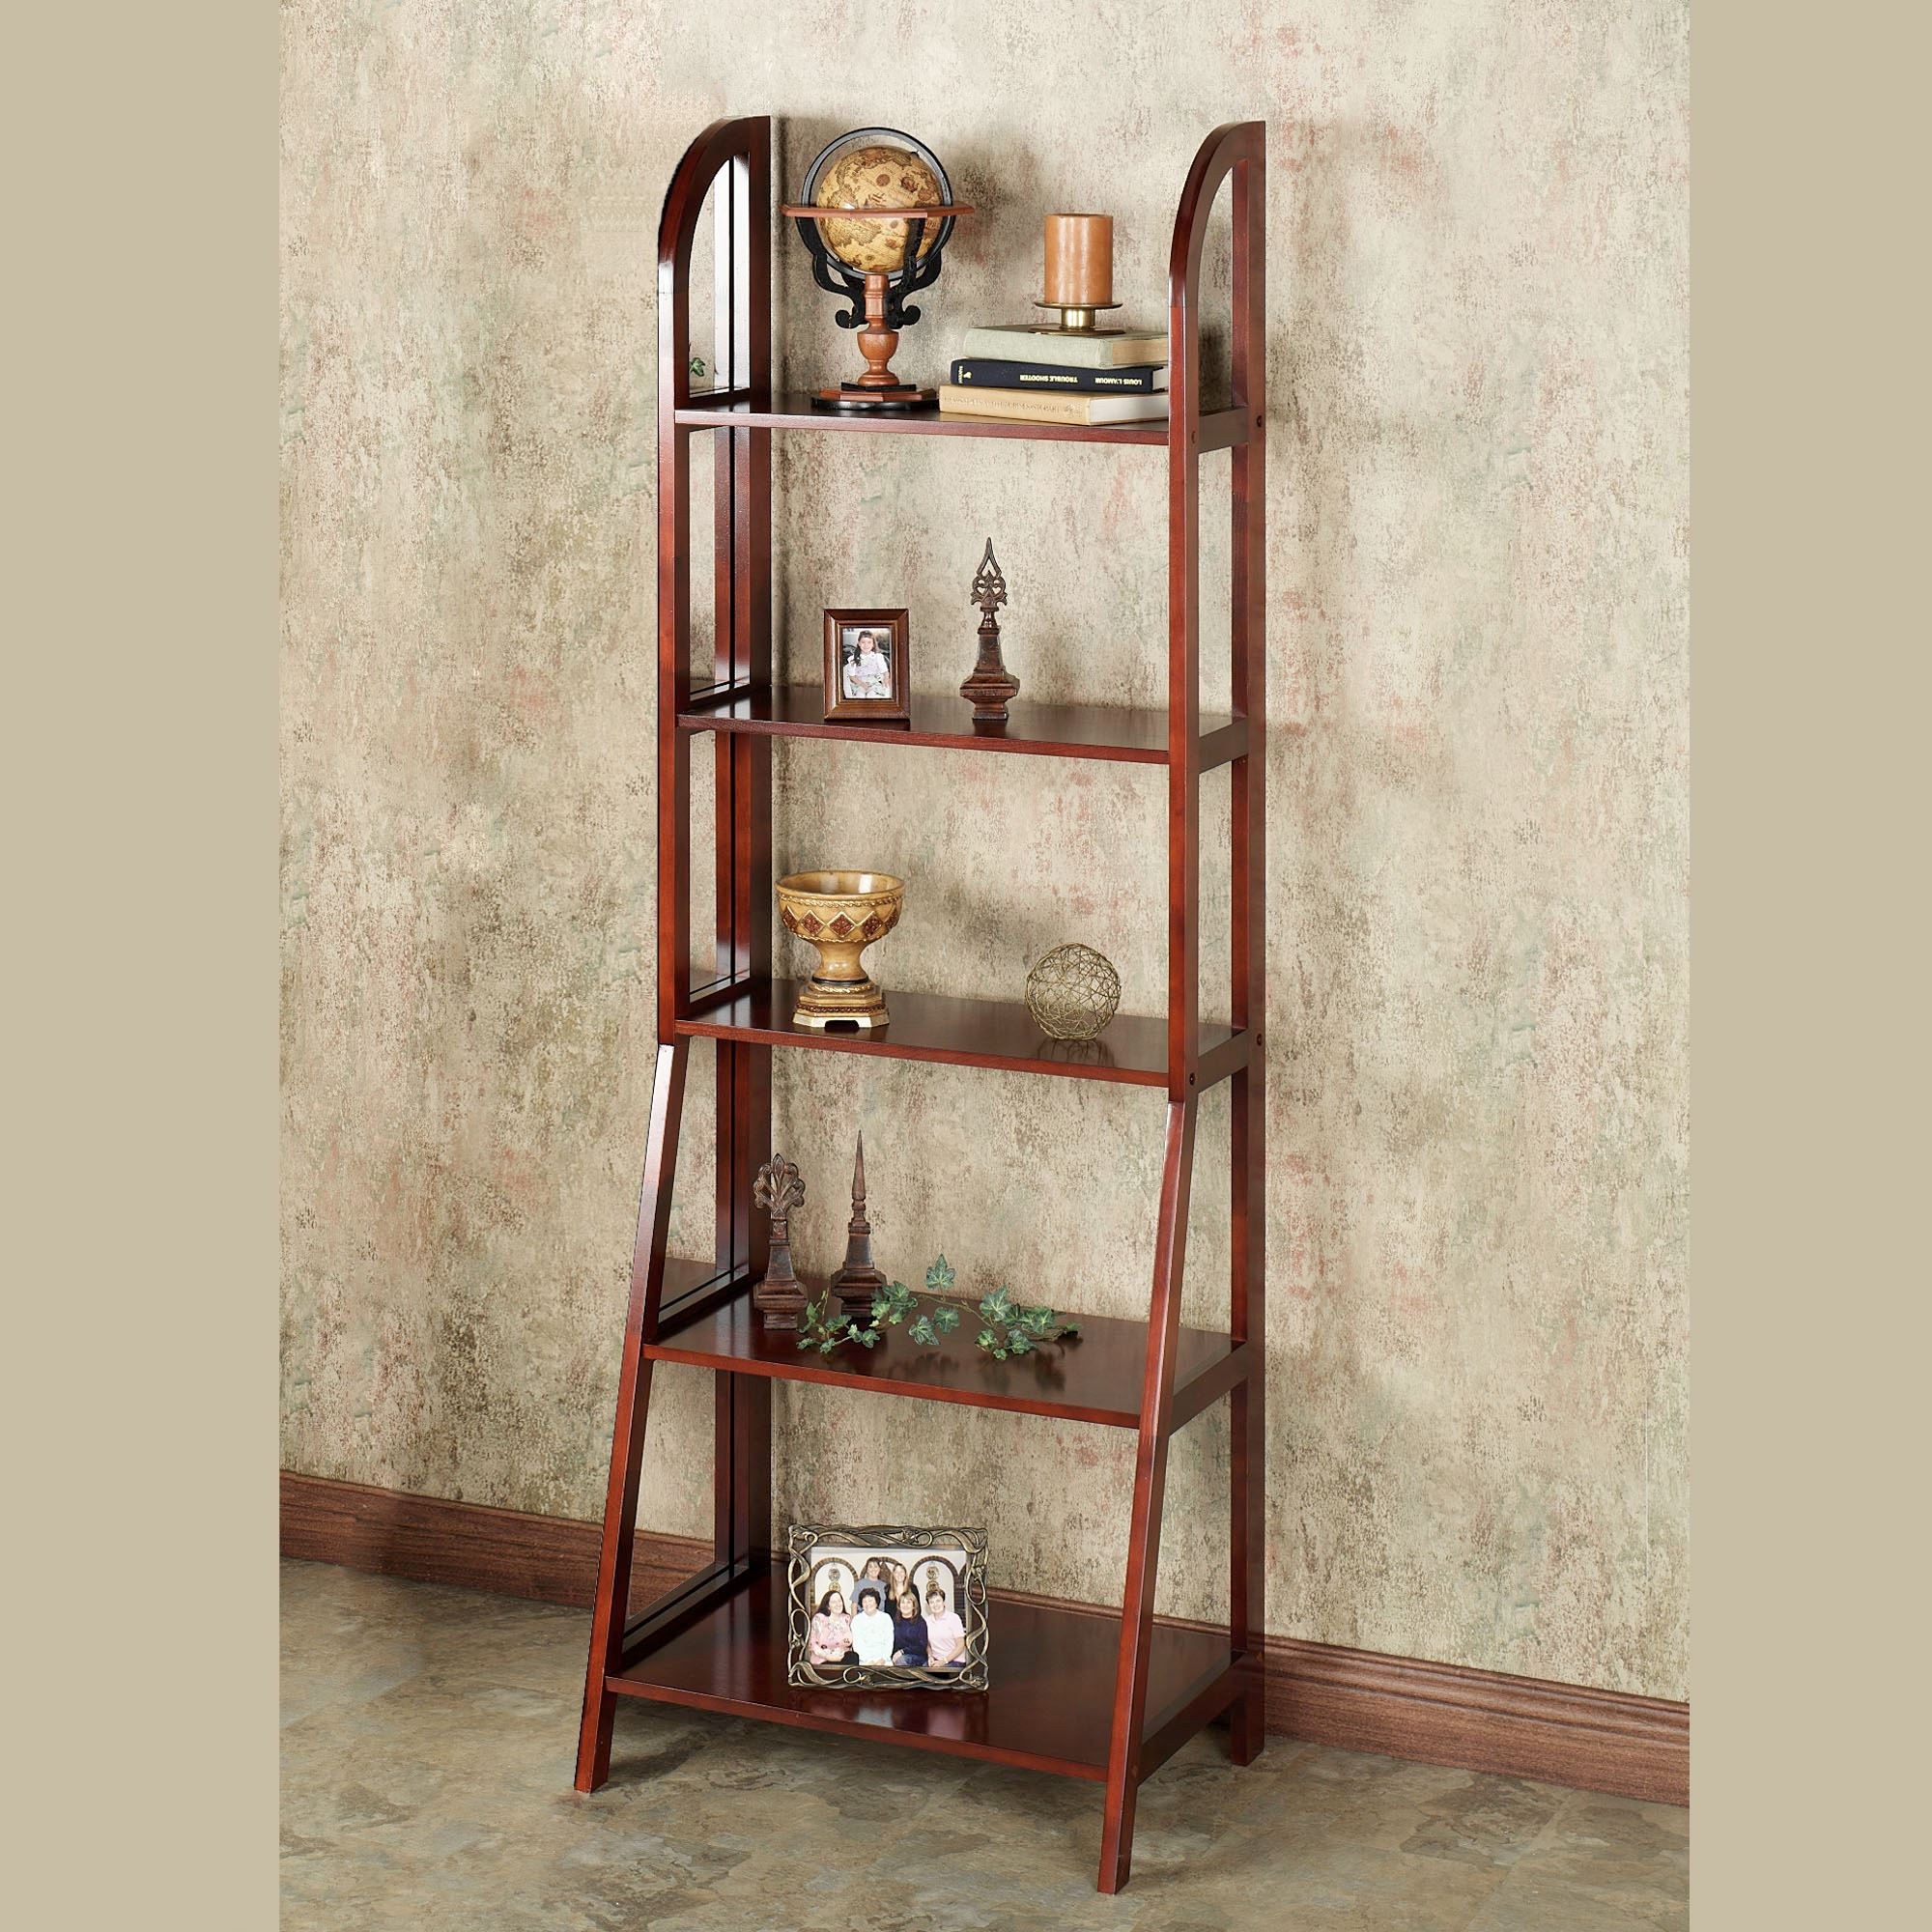 Kimber Tall Ladder Shelf Only Classic Cherry 5